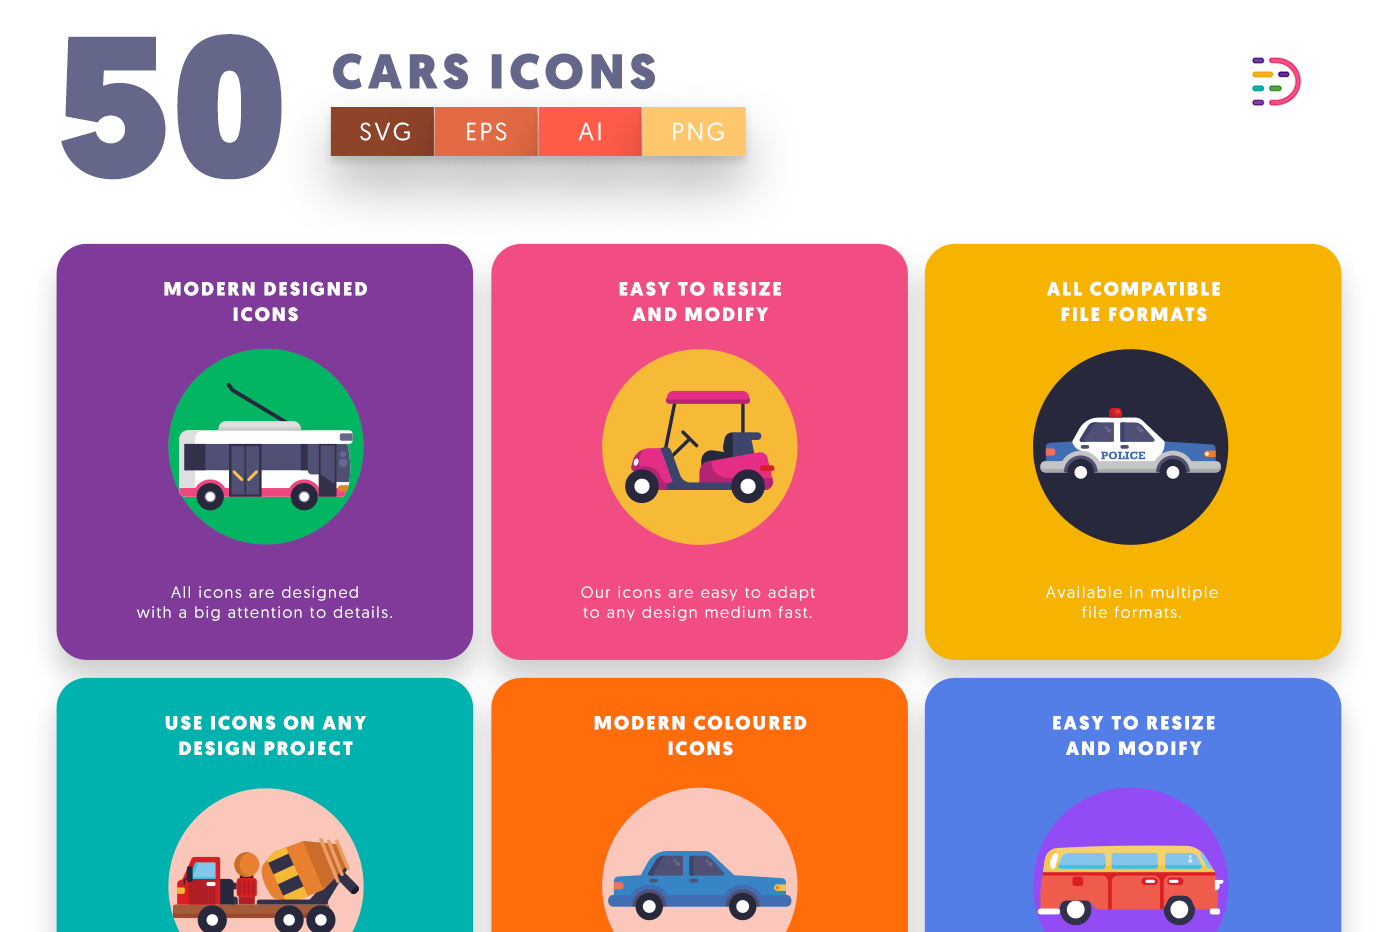 50 Cars Icons with colored backgrounds